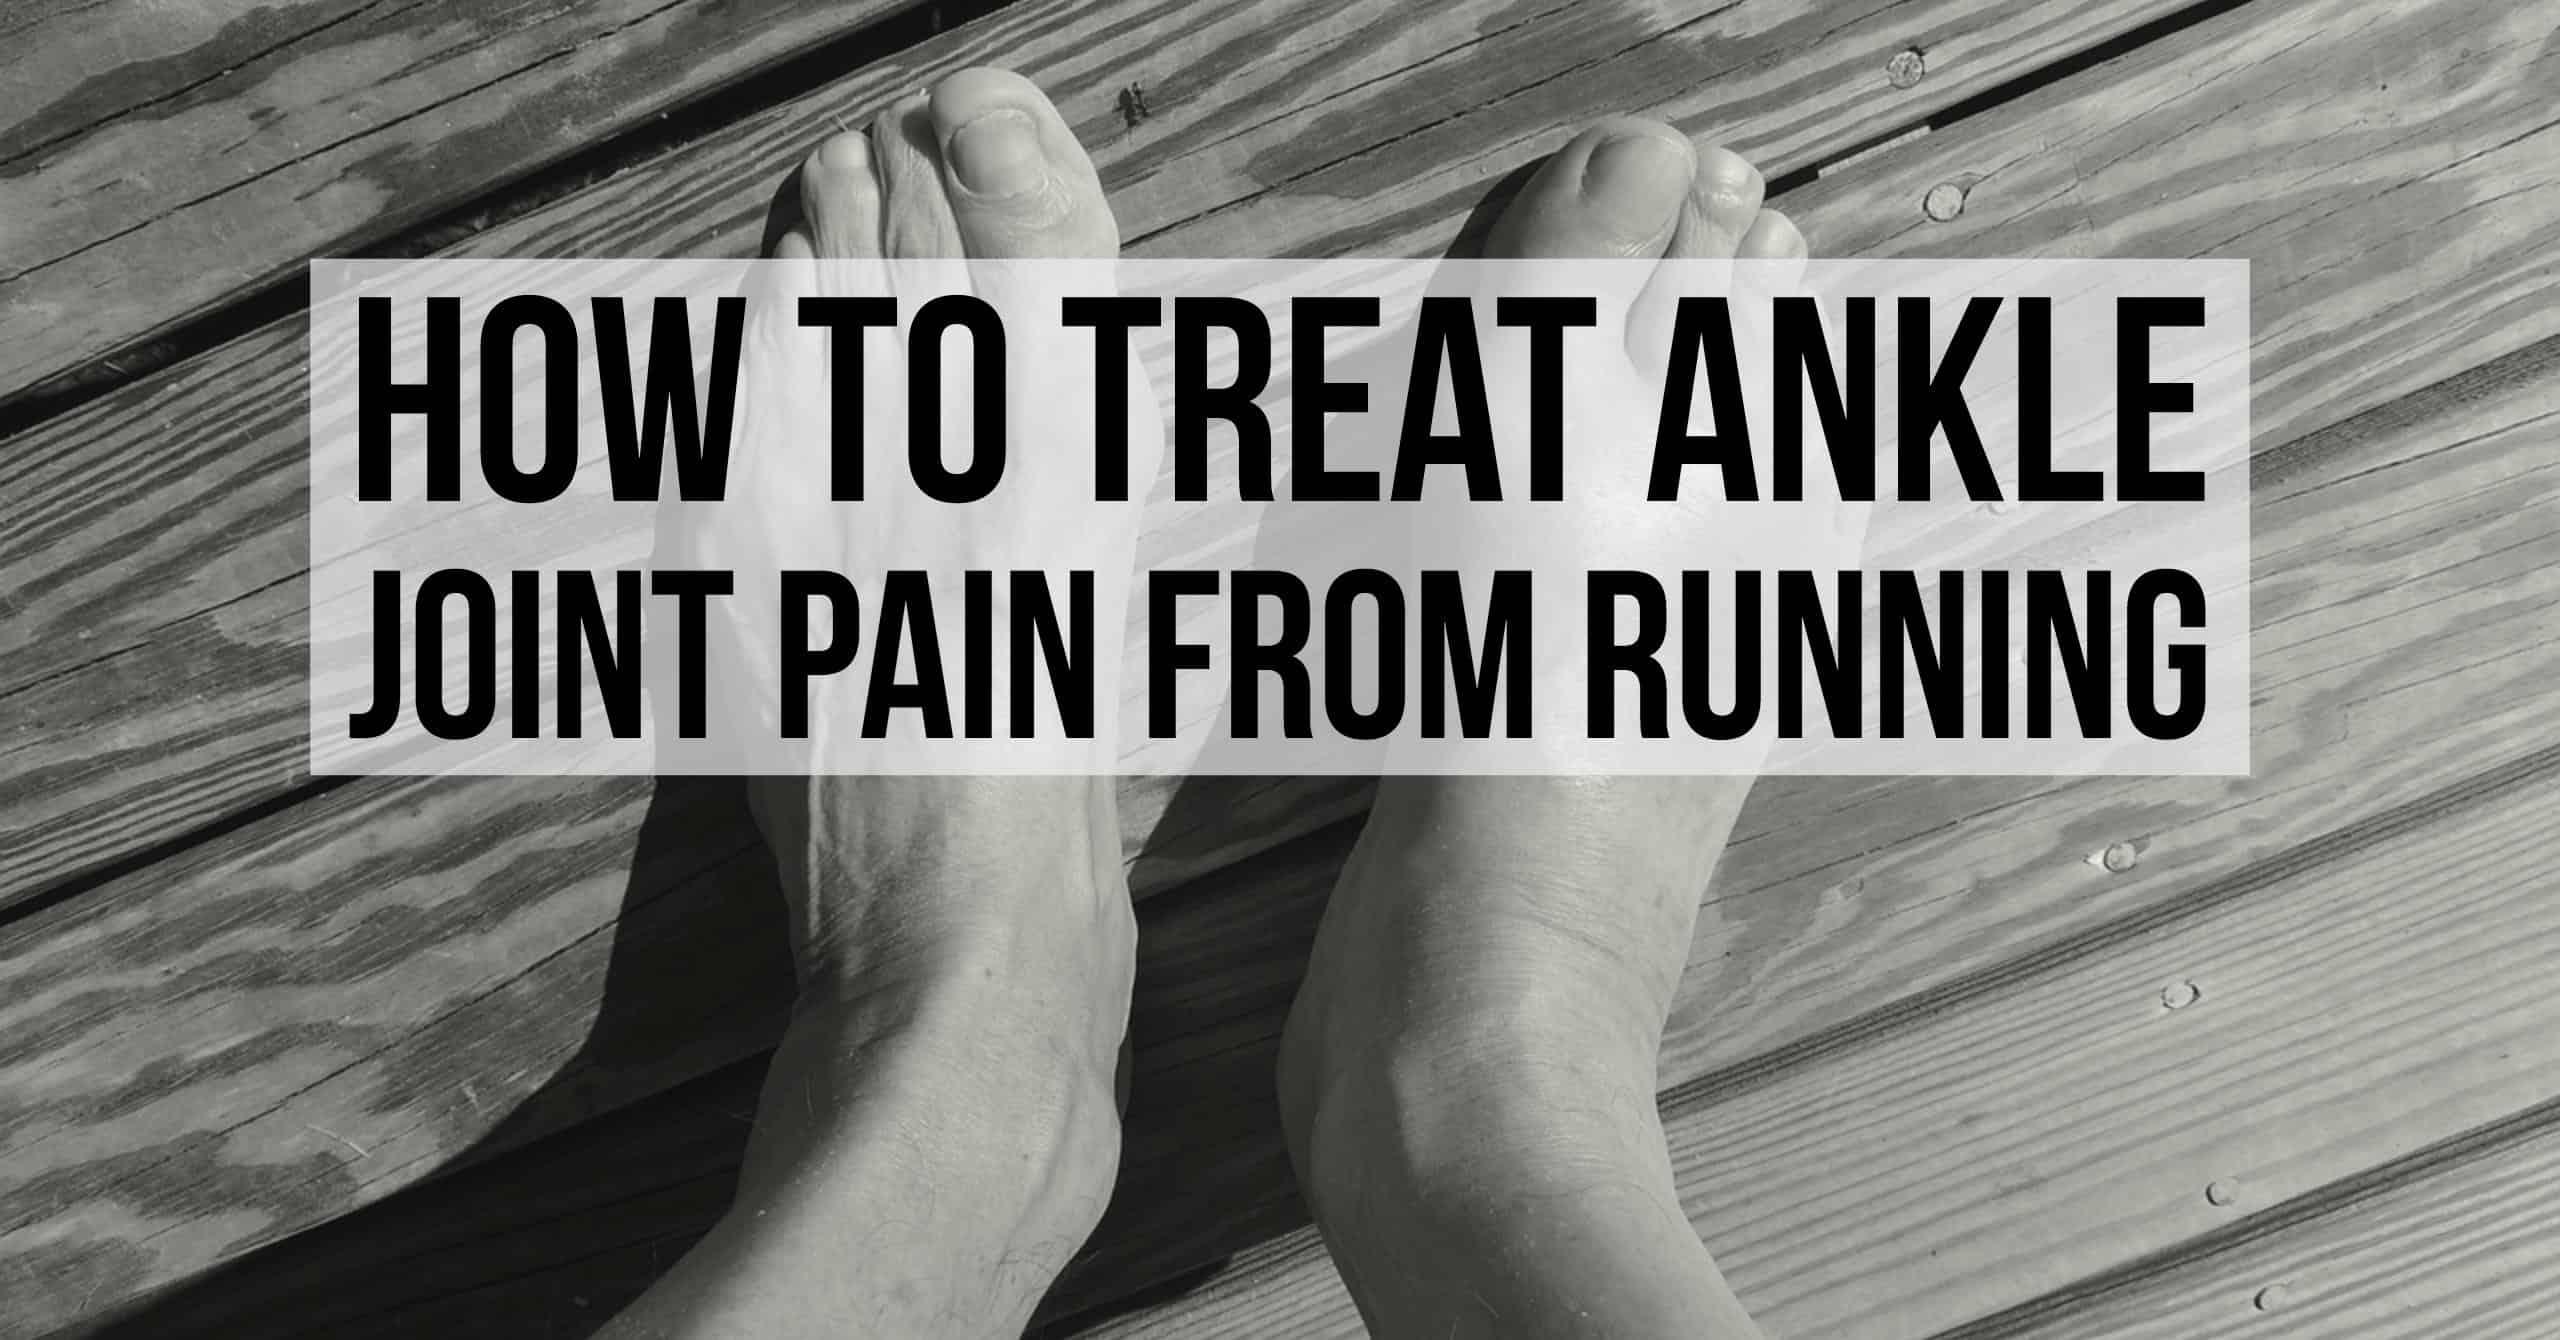 Most of ankle injuries by runners involve Achilles tendinitis or sprains. We break down how to treat ankle joint pain from running at home.